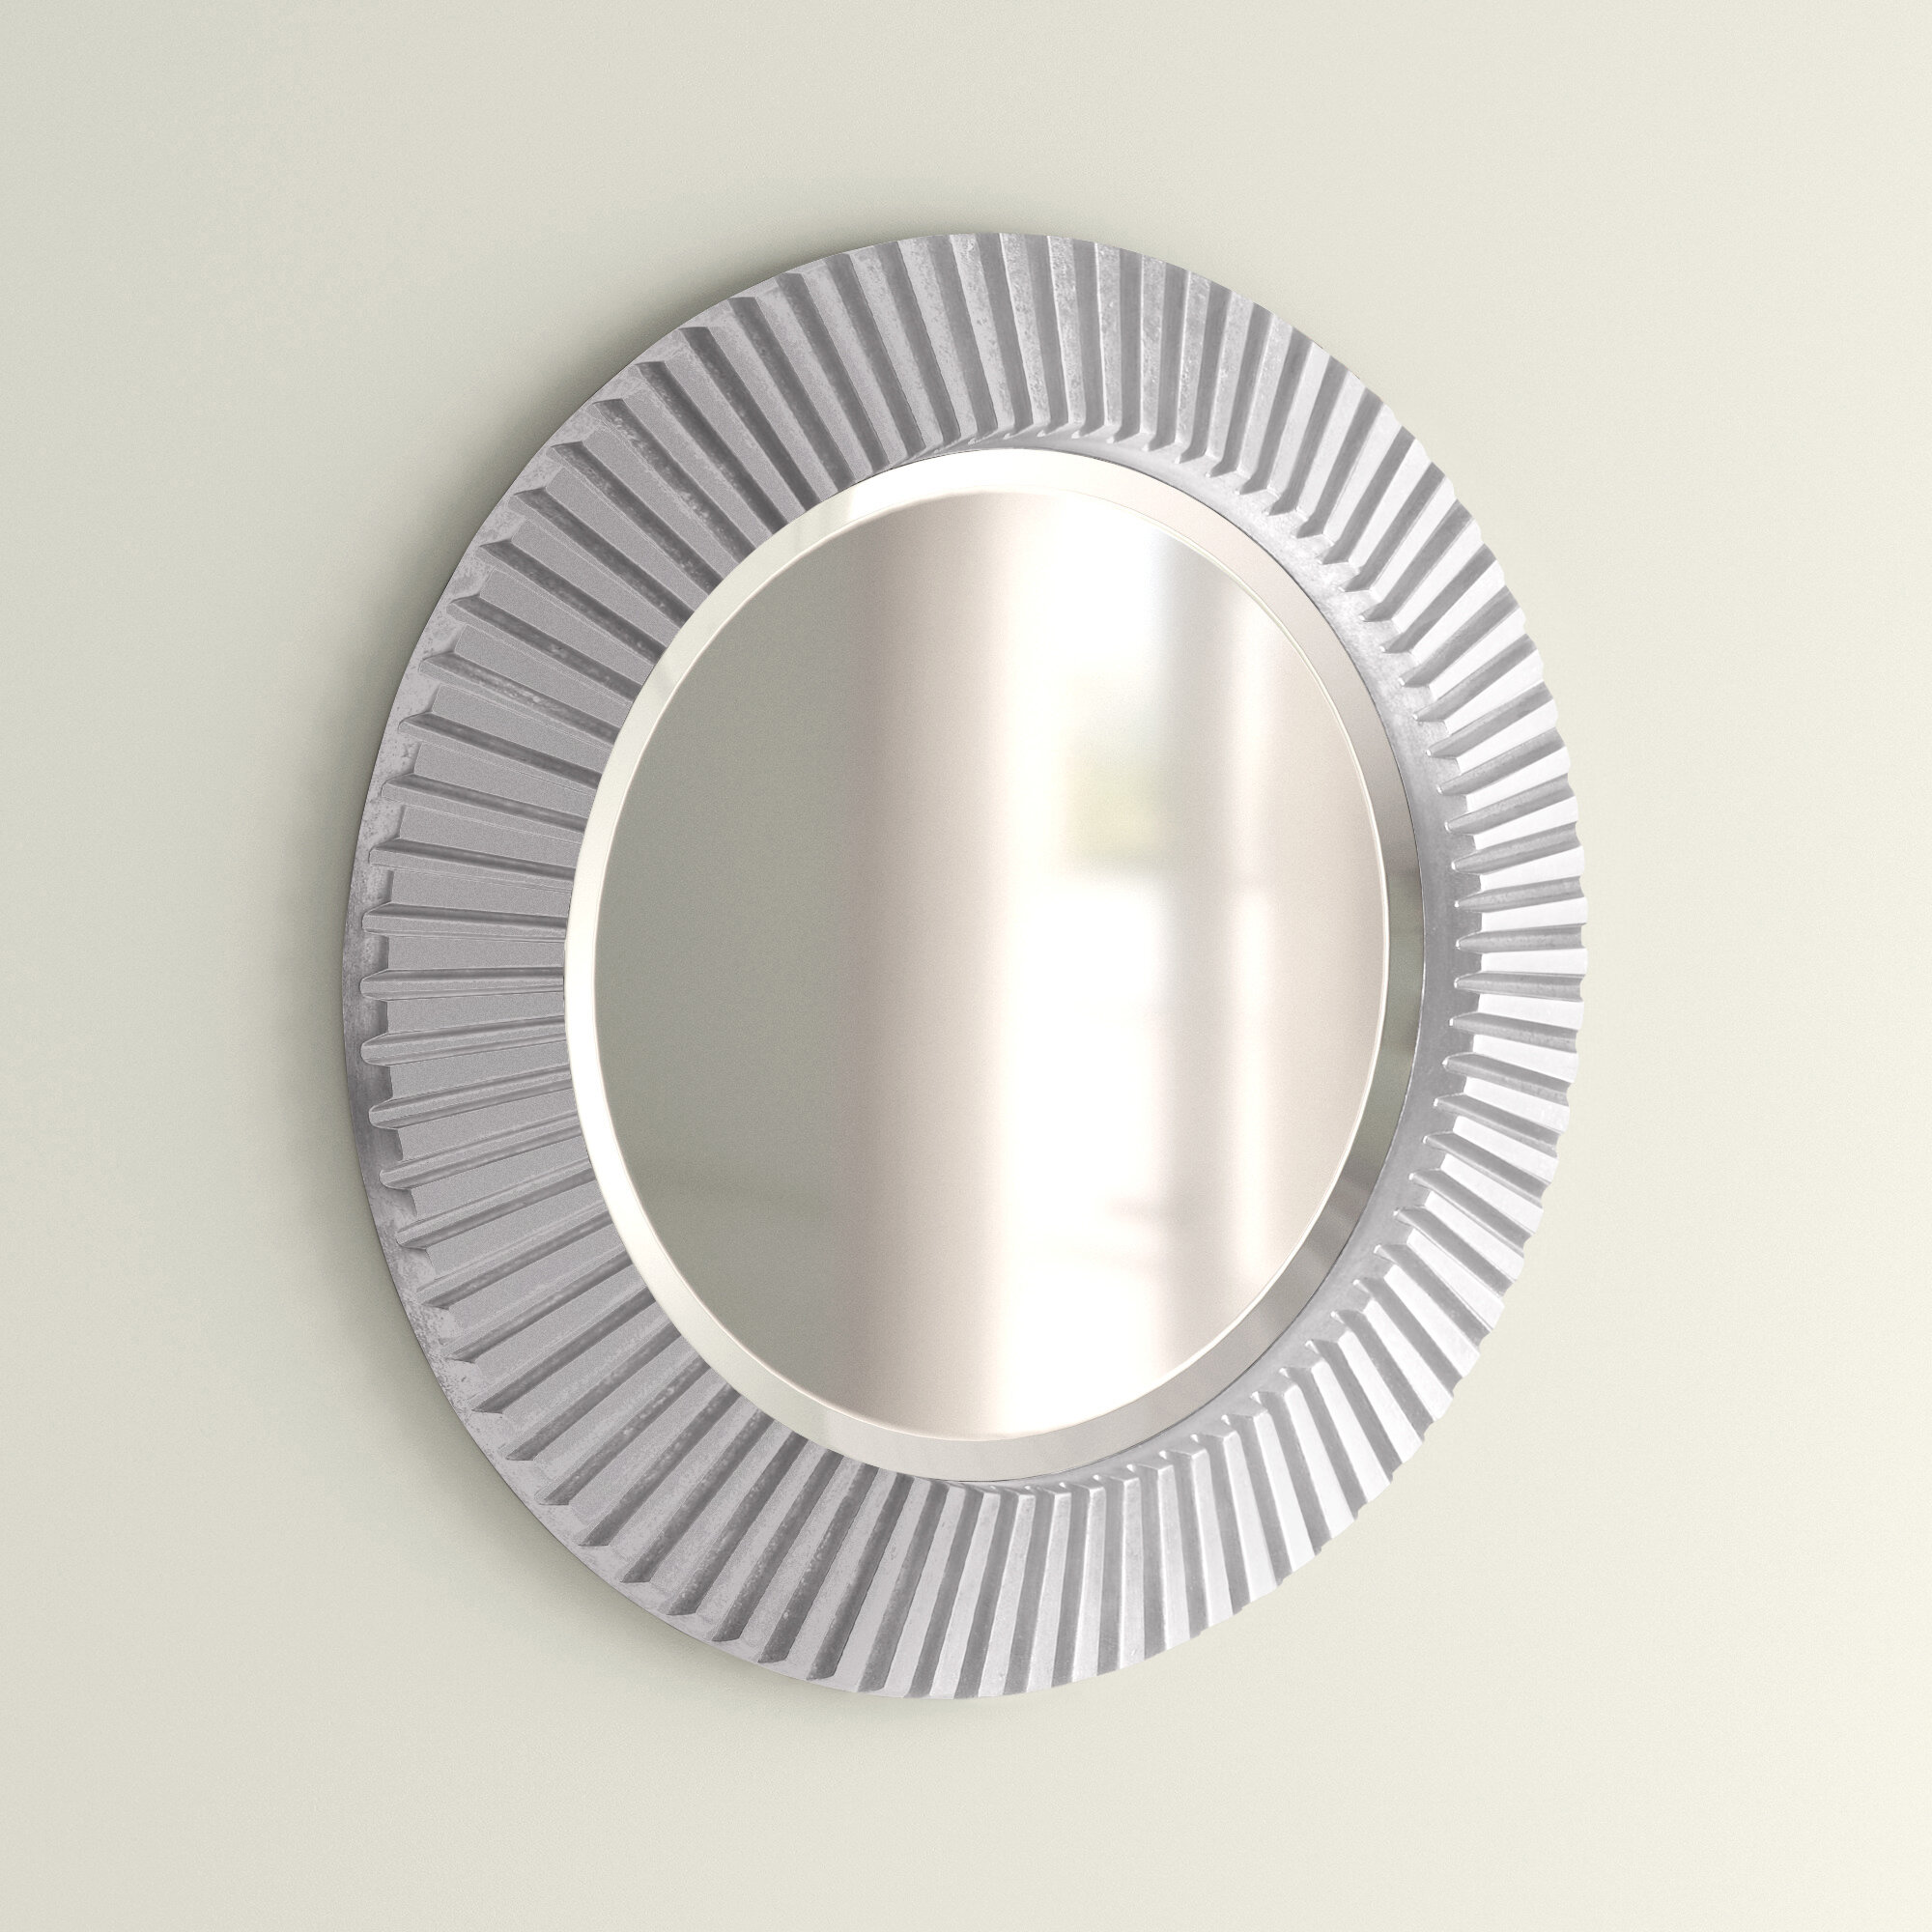 Silver Wall Mirrors Free Shipping Over 35 Wayfair